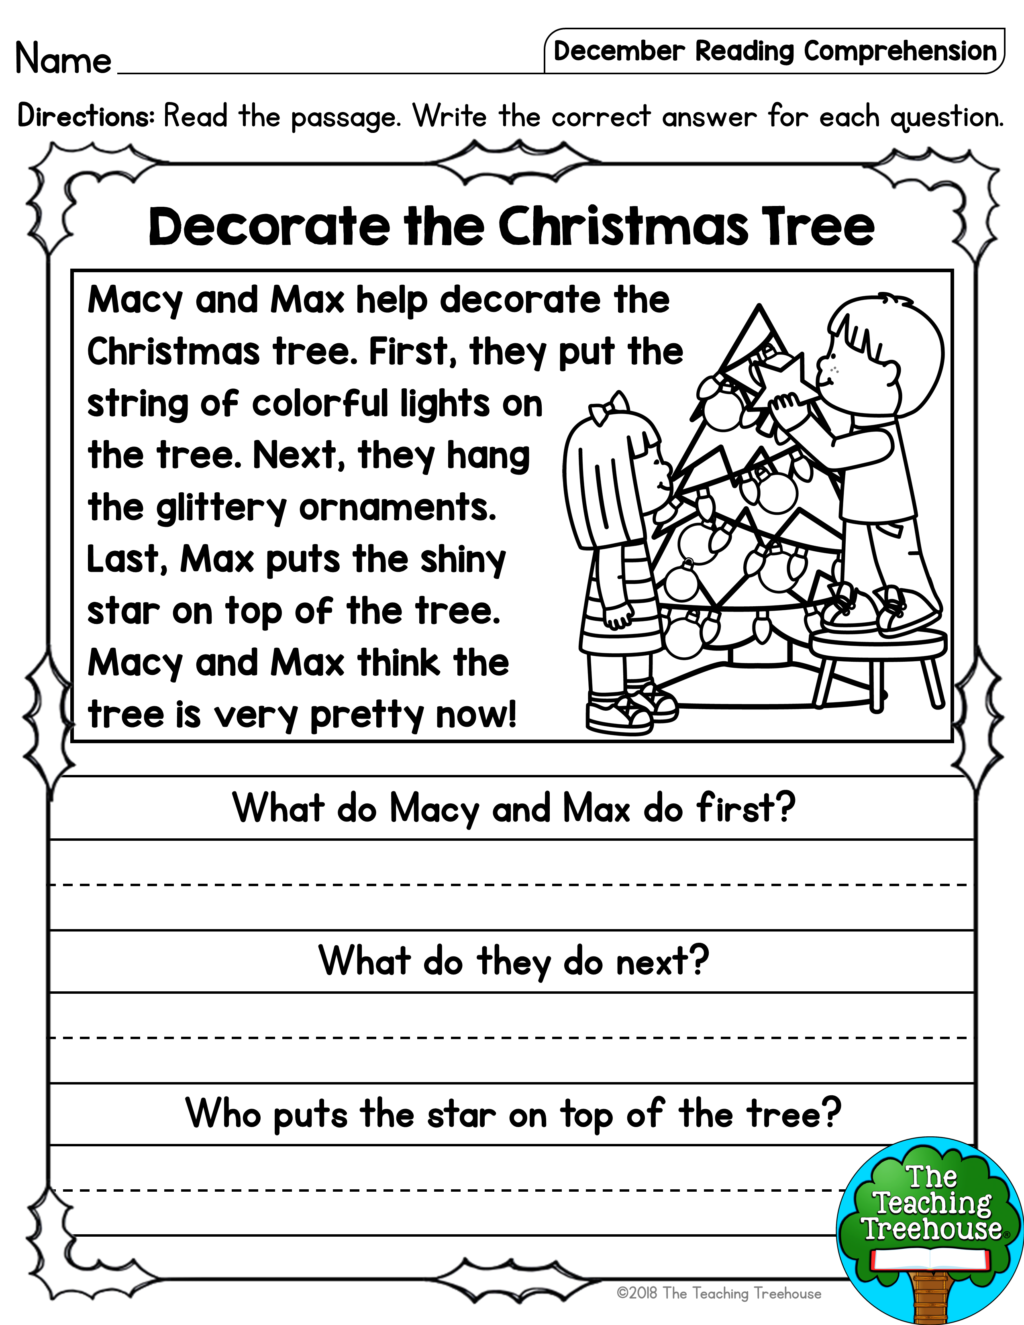 Marvelous 1St Grade Reading Comprehension Questions